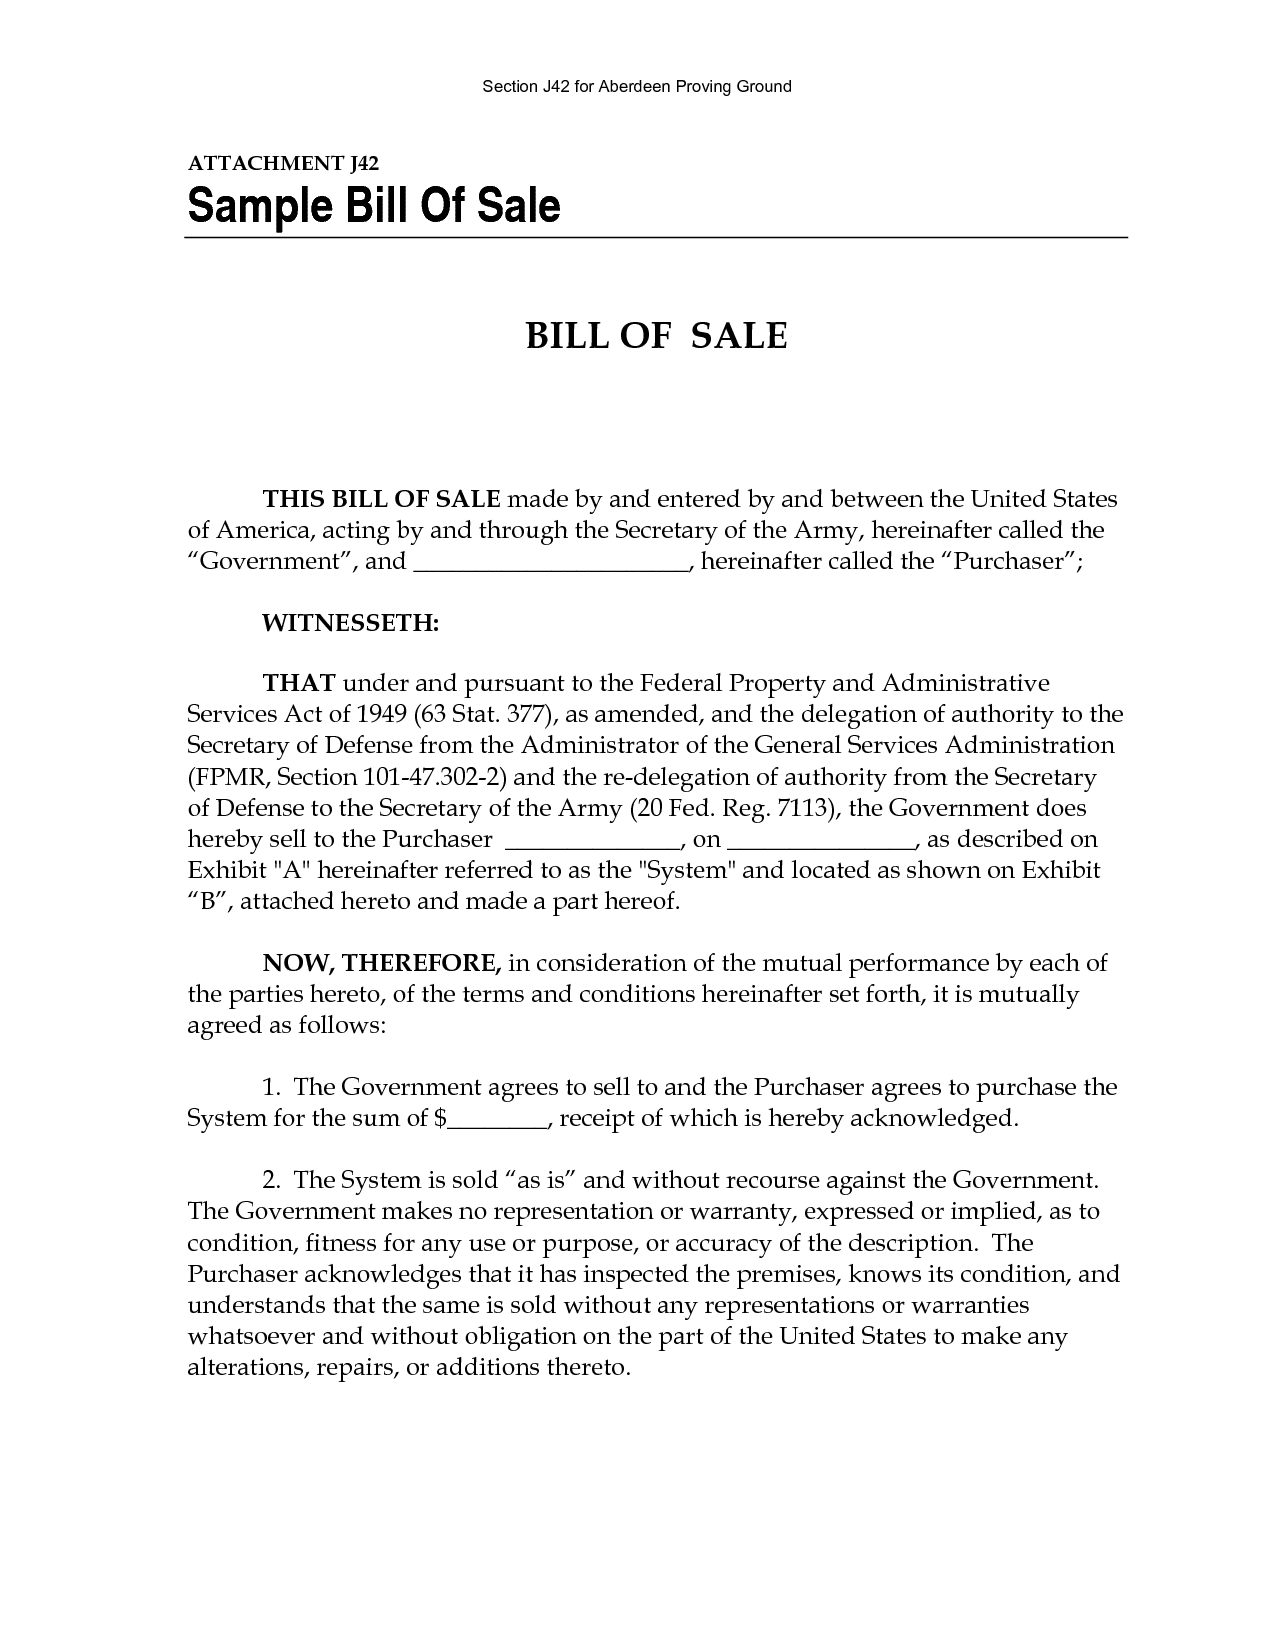 Sample Bill Of Sale For Vehicle Alberta And Sample Vehicle Bill Of Sale North Carolina